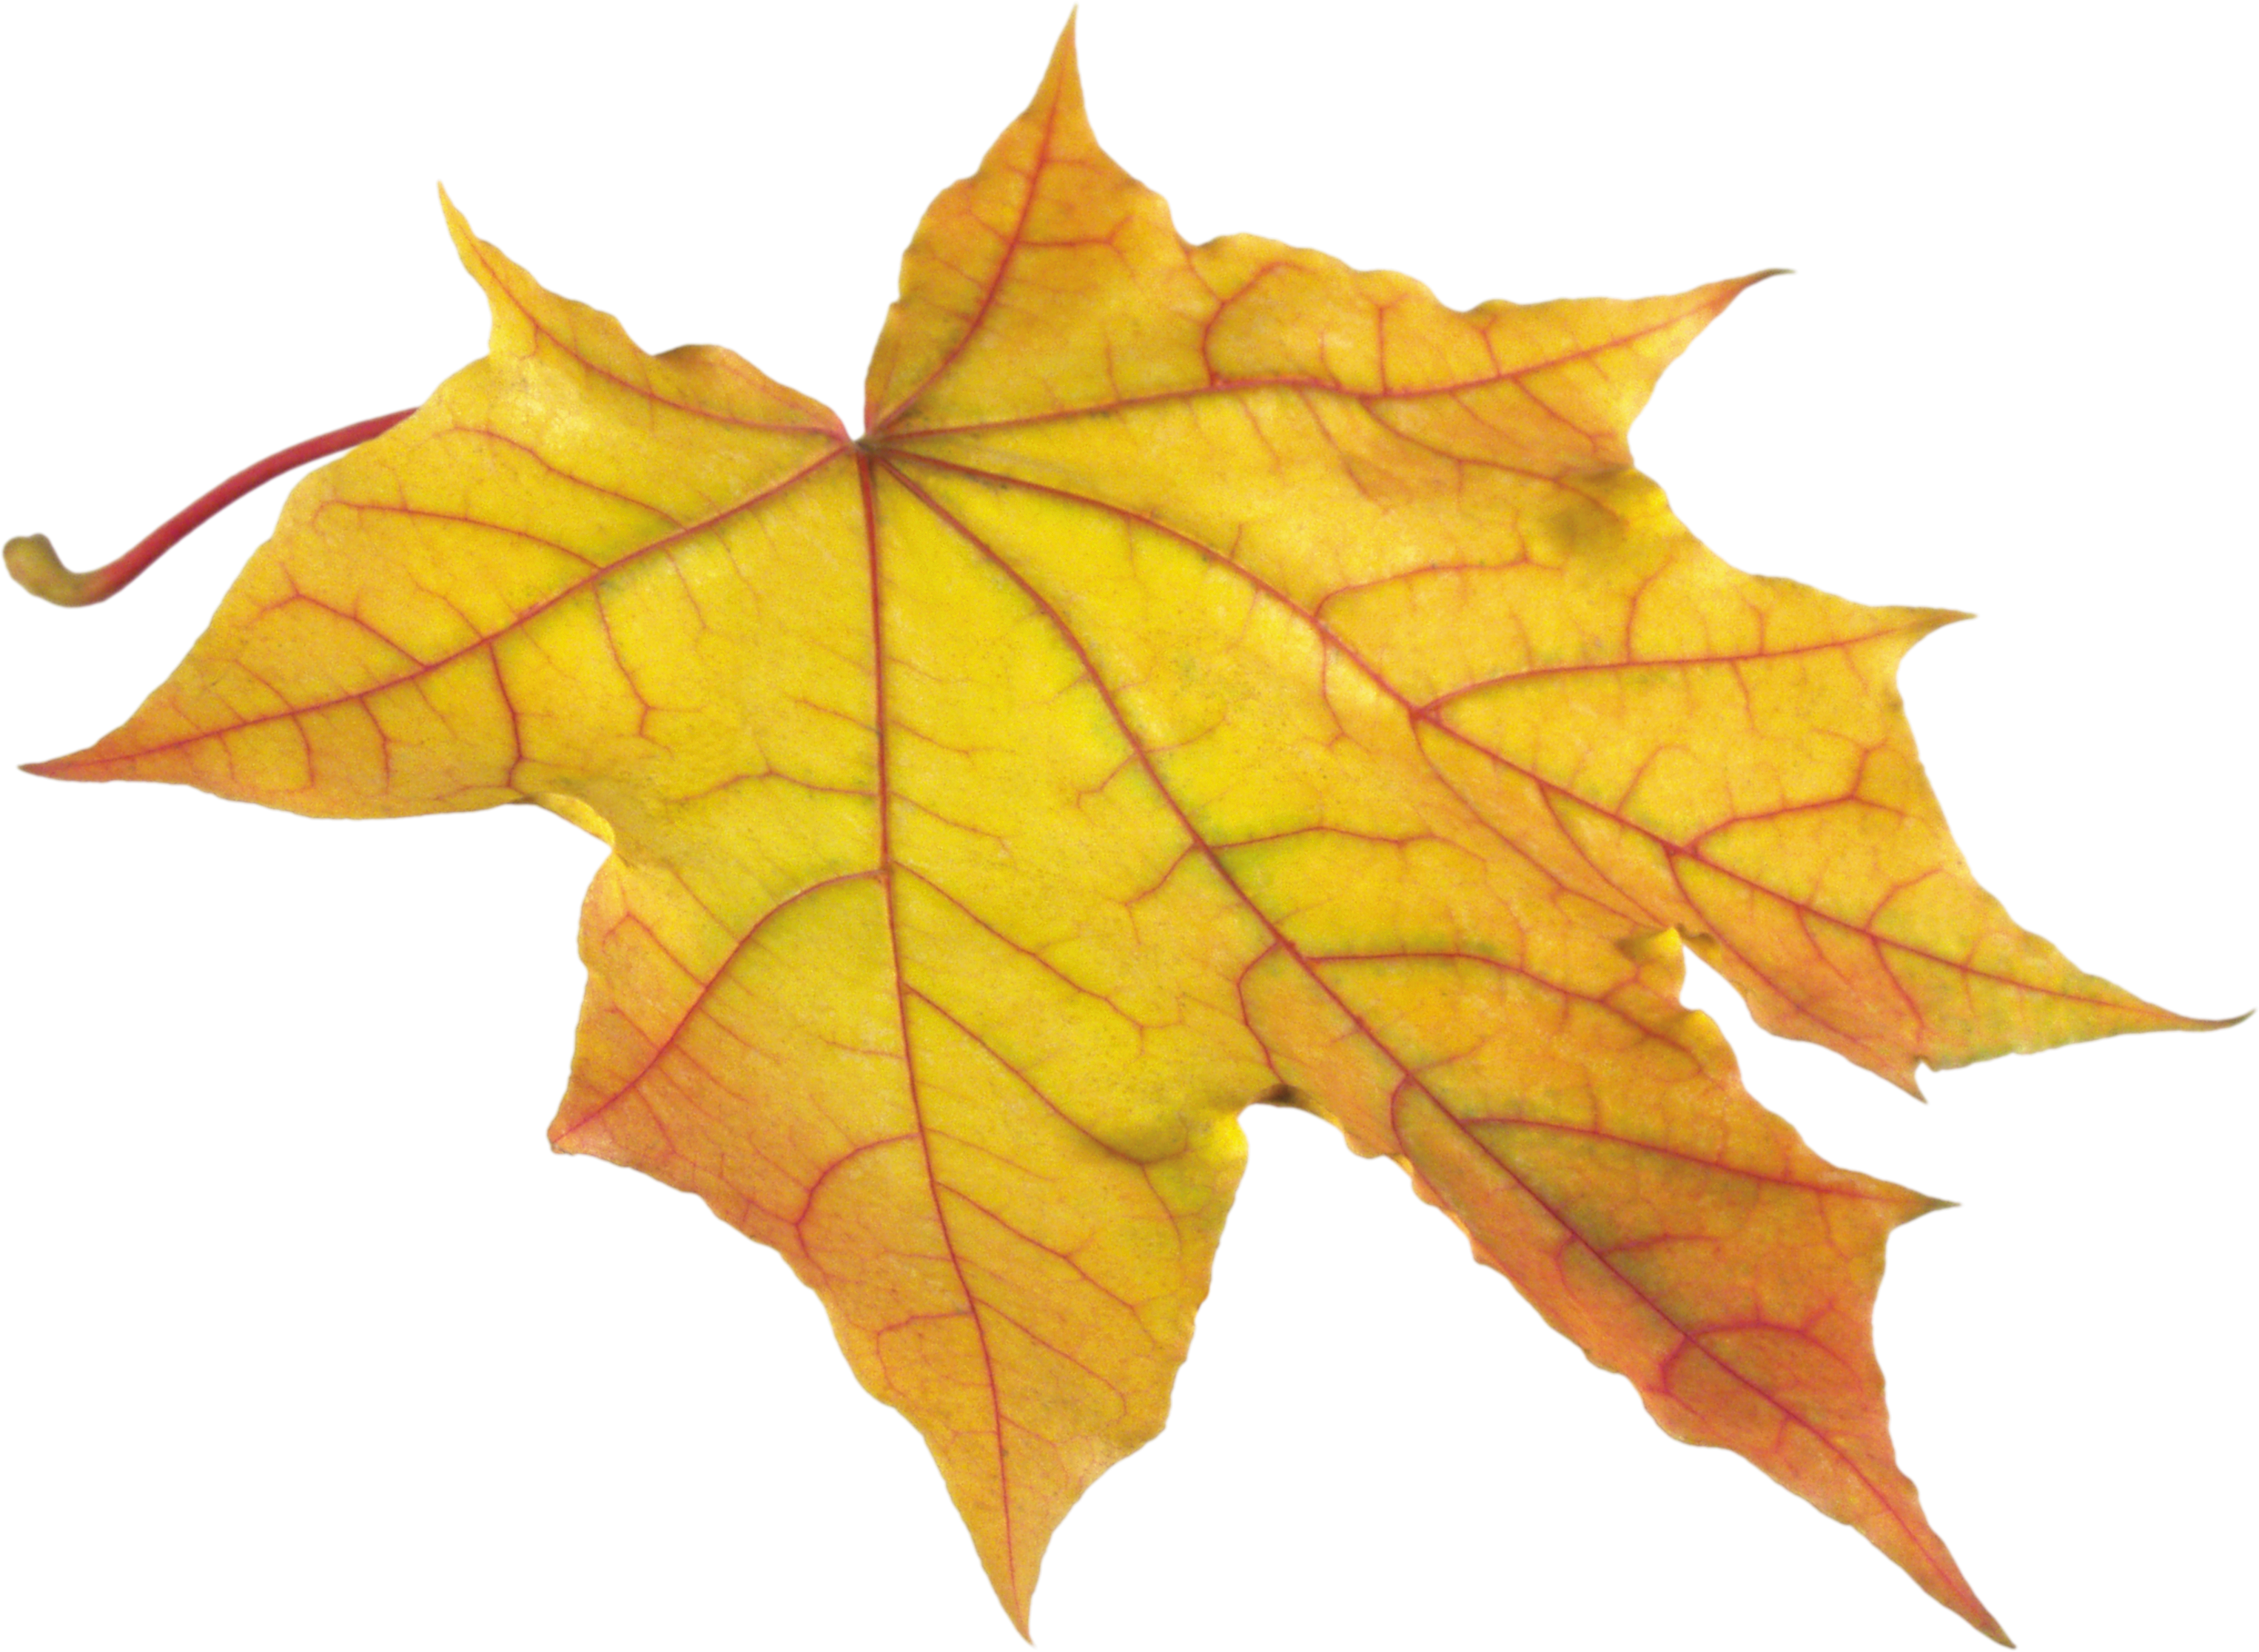 Yellow leaf png image. Clipart park autumn sky